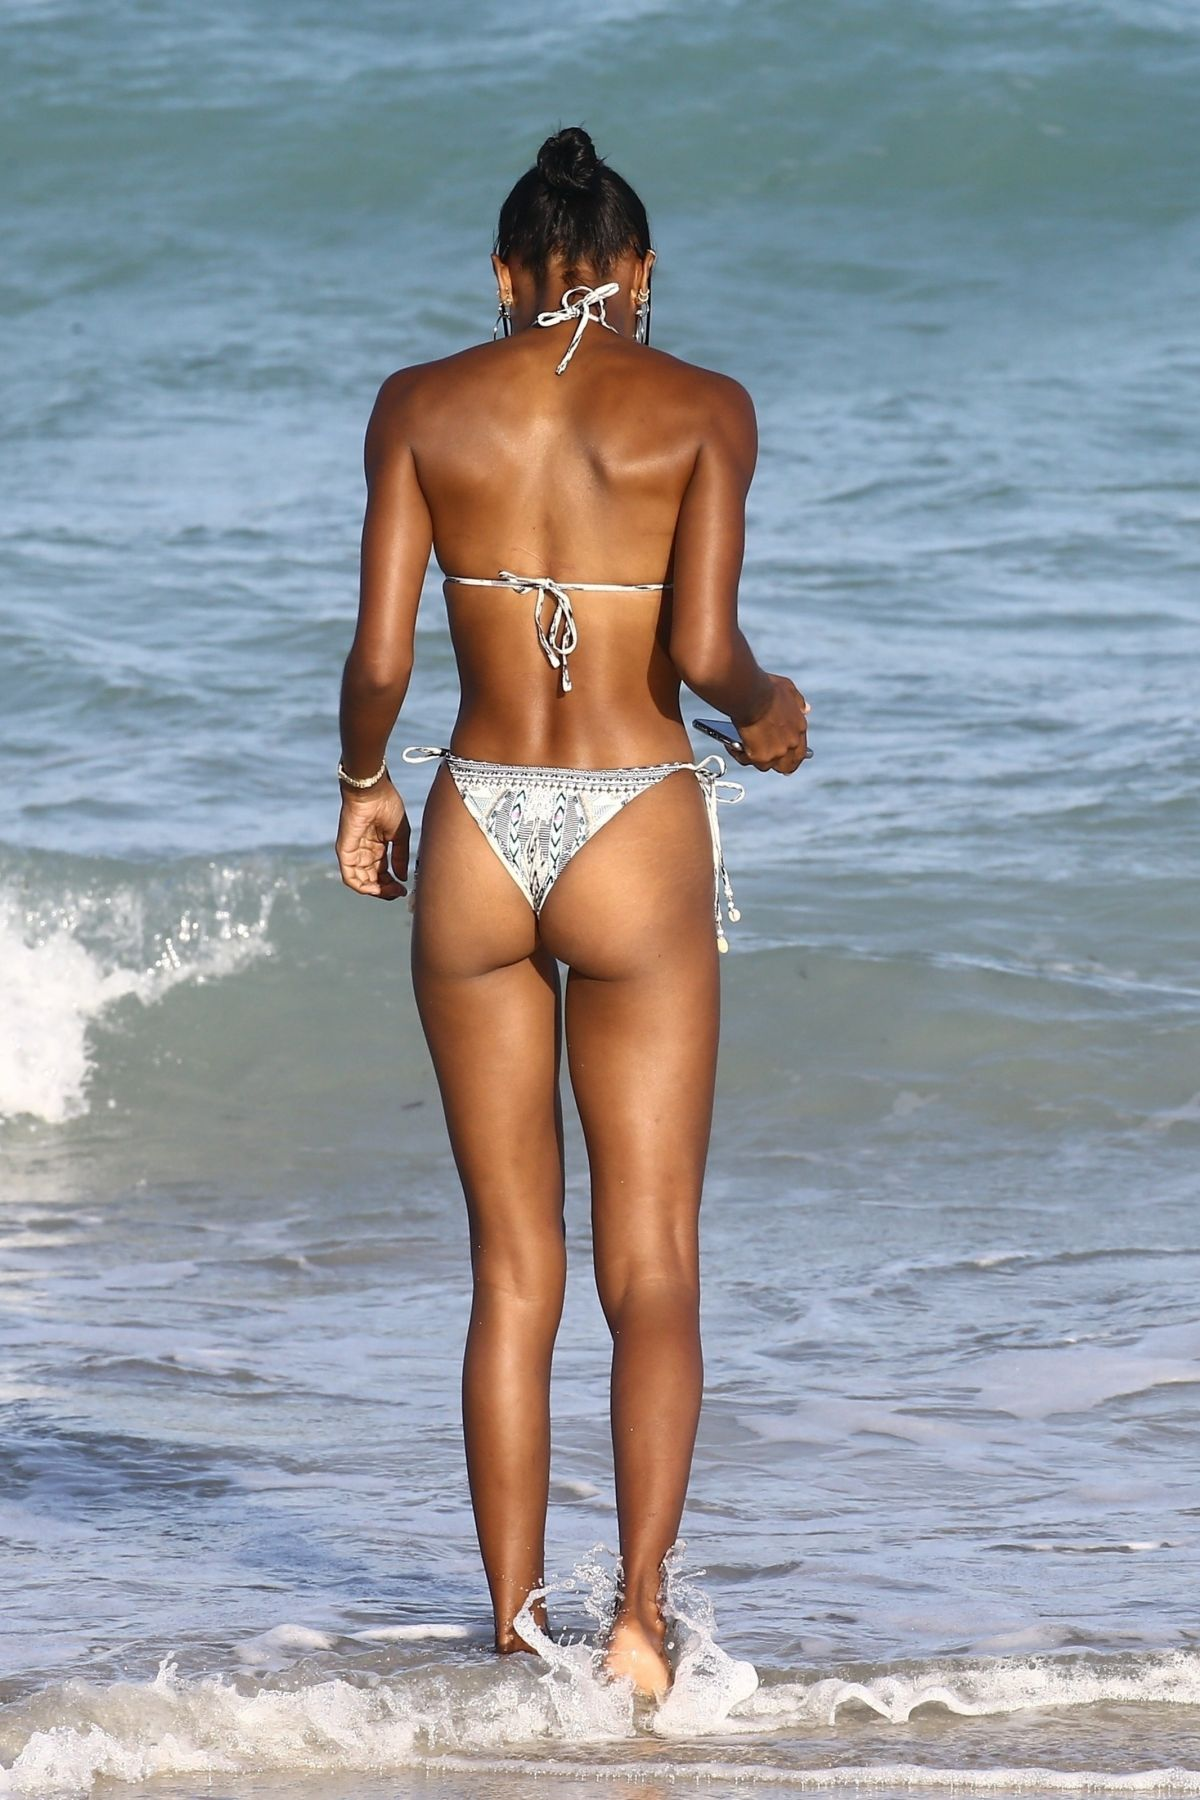 Bikini Jasmine Tookes nude (93 photo), Sexy, Leaked, Boobs, cameltoe 2017